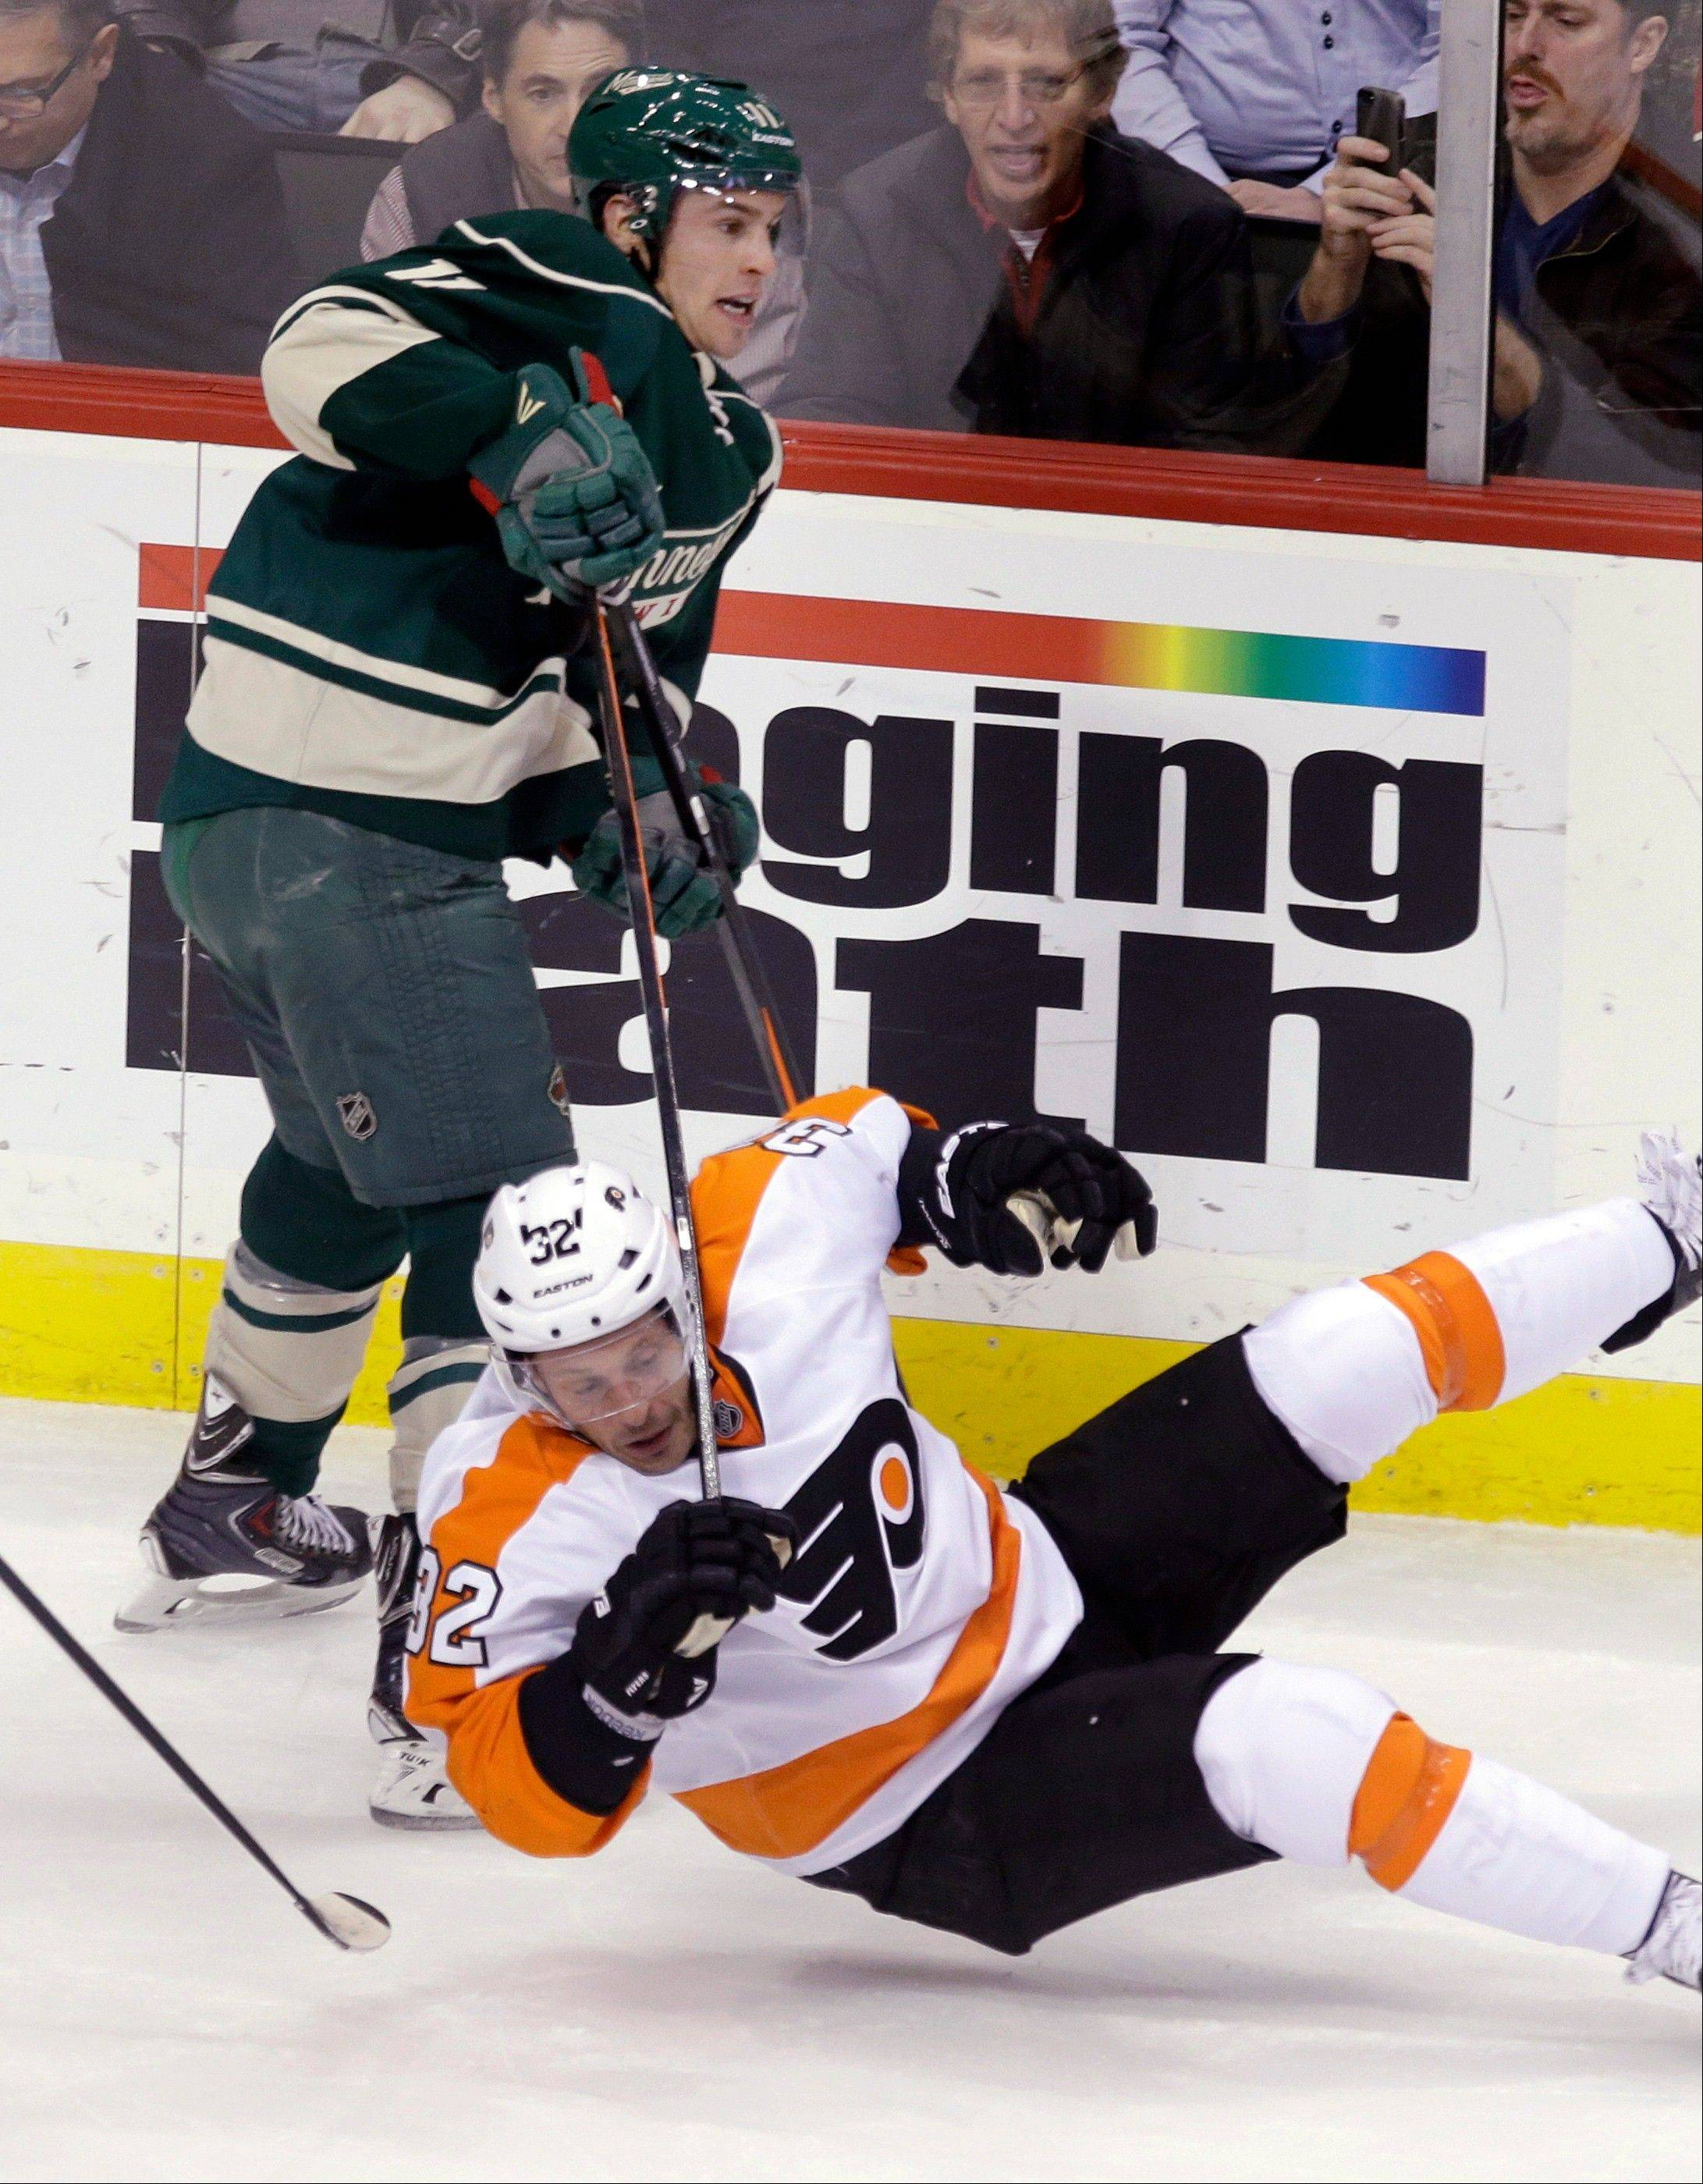 Minnesota Wild's Zach Parise, top, sends Philadelphia Flyers defenseman Mark Streit to the ice in the first period of an NHL hockey game Monday in St. Paul, Minn.